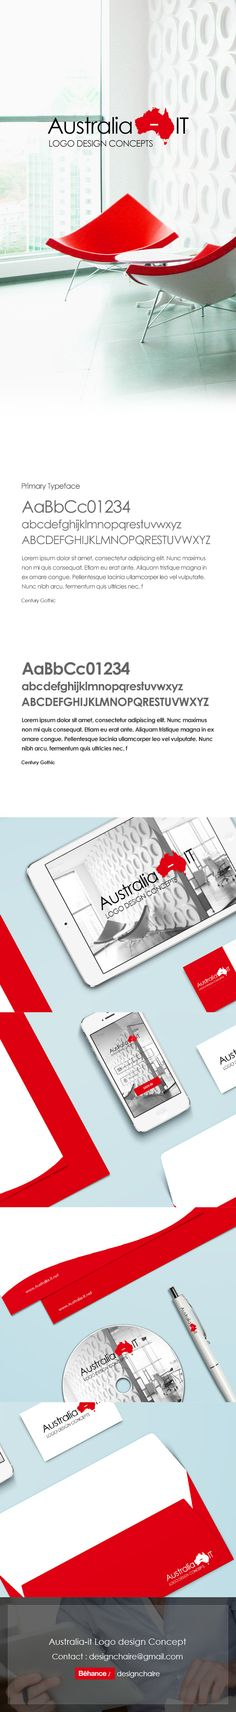 Australia-it is a Software company based on australia.  Thank you very much for your appreciations and comments!